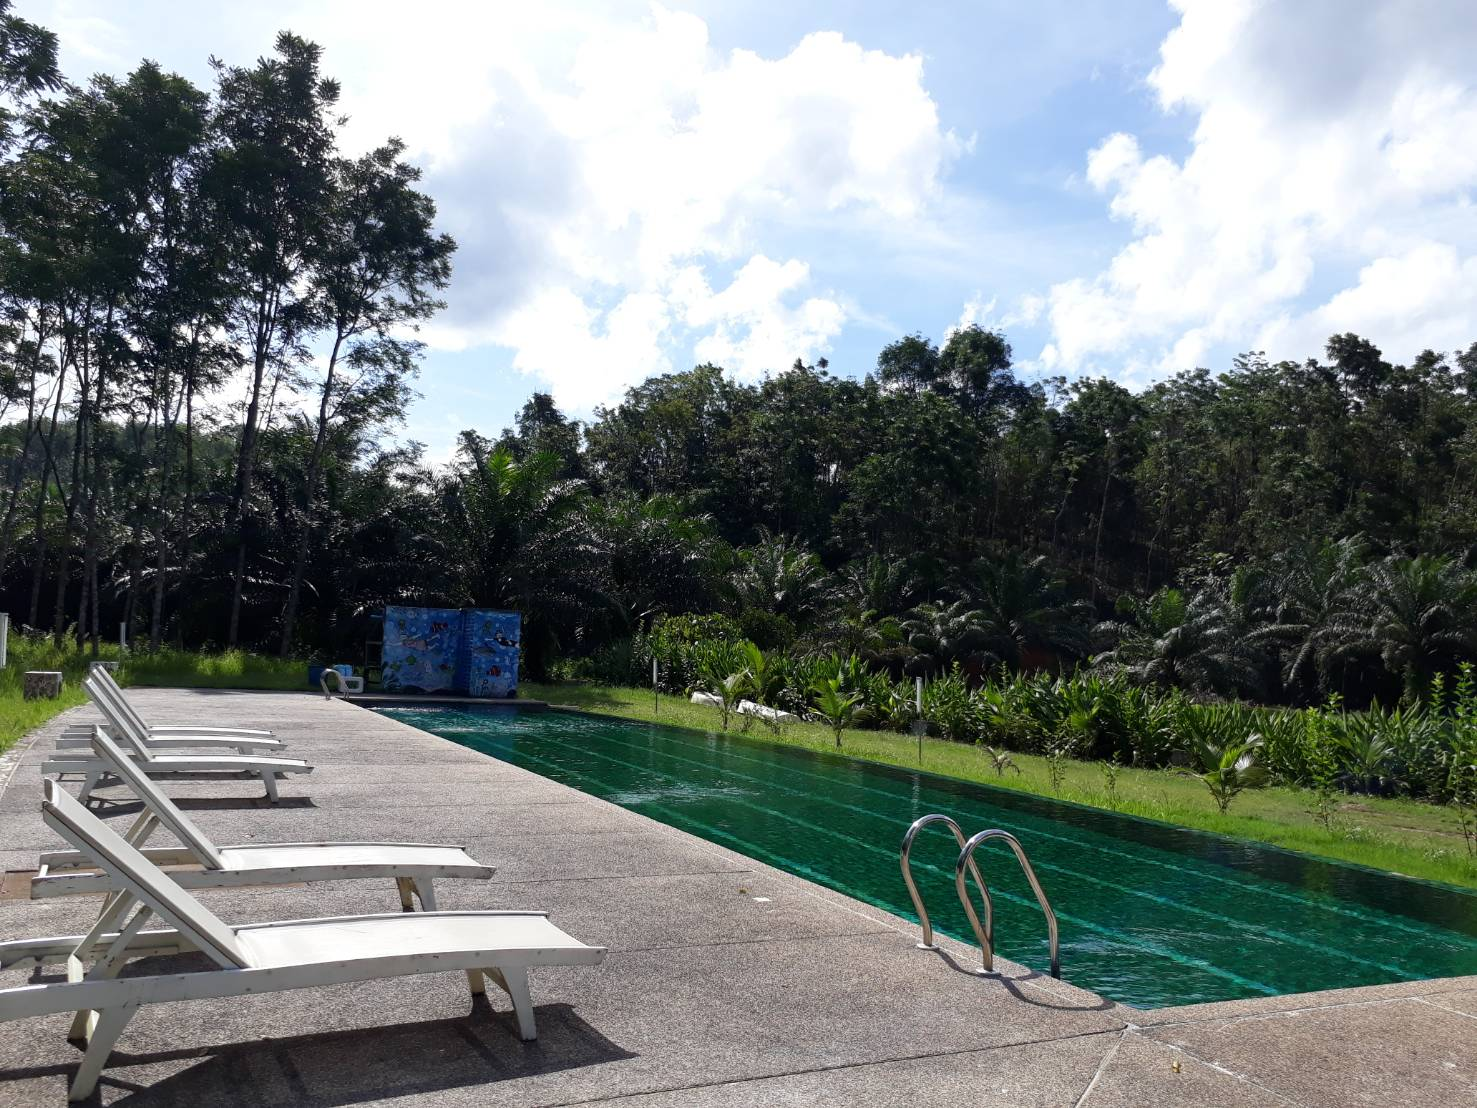 Outdoor swimming pool is open for use every day.